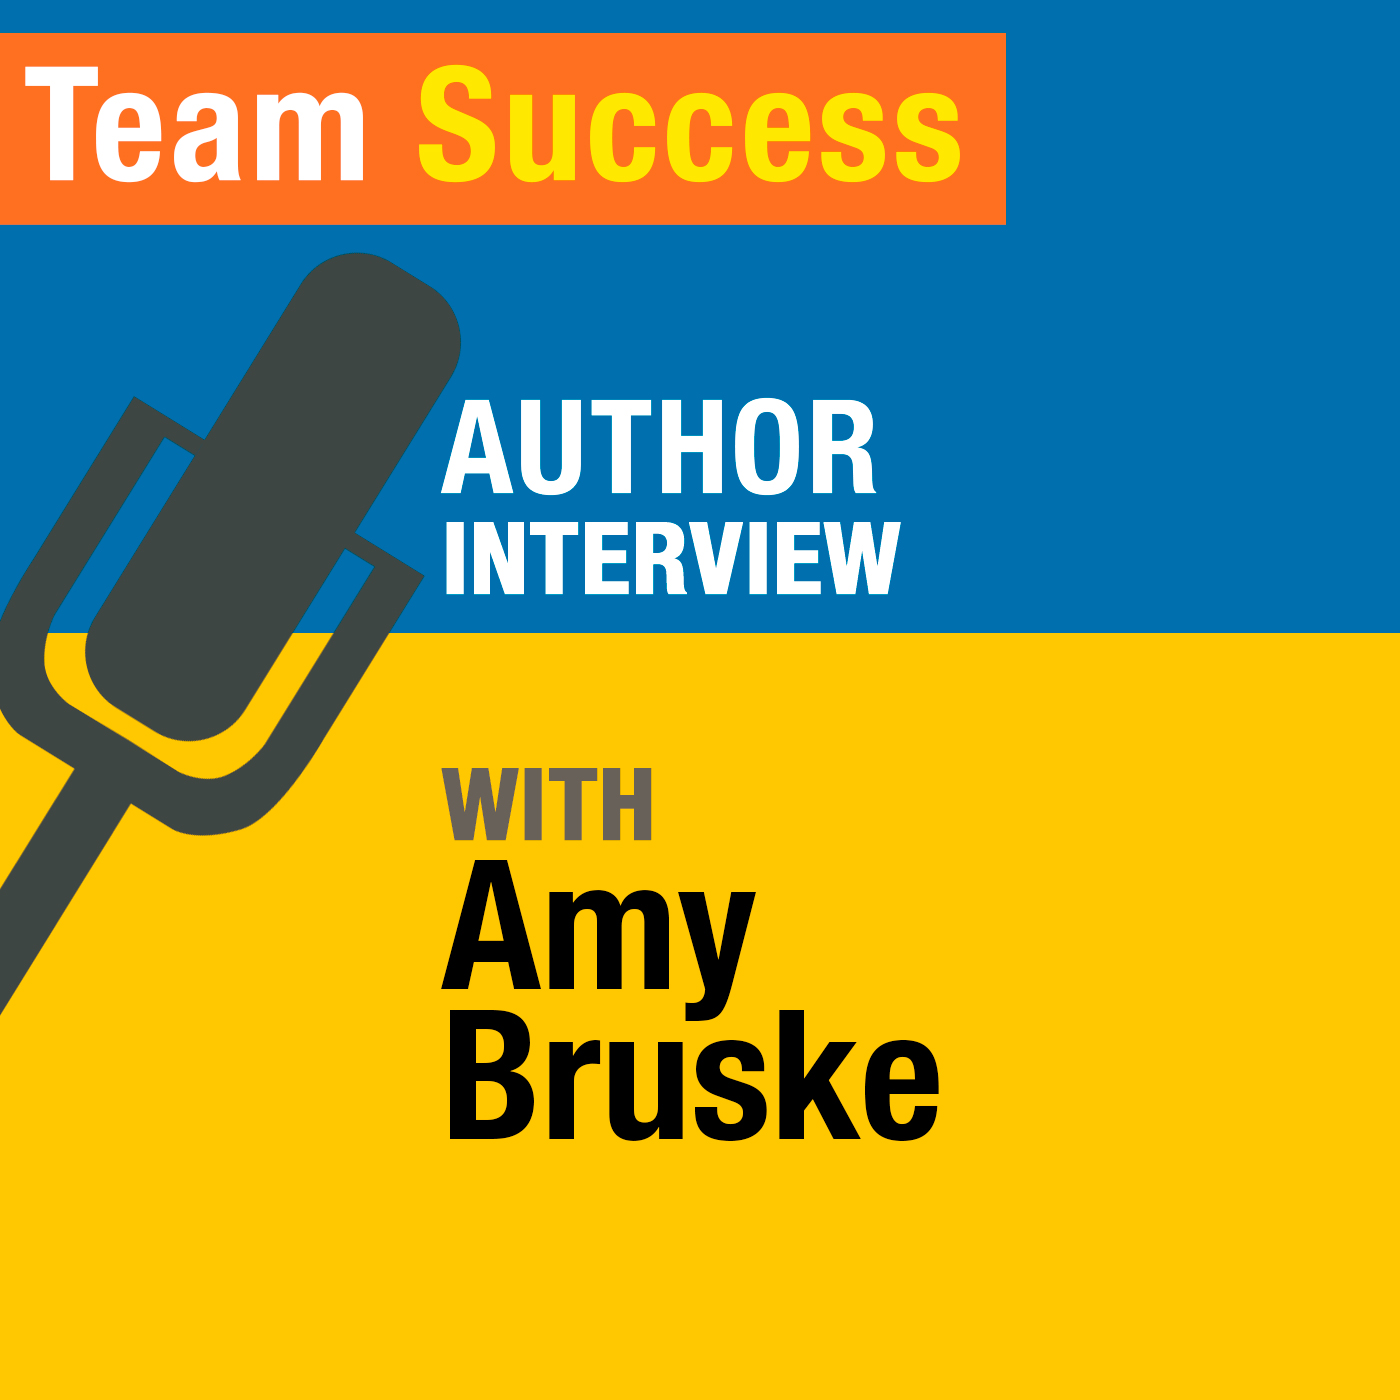 Author Interview with Amy Bruske